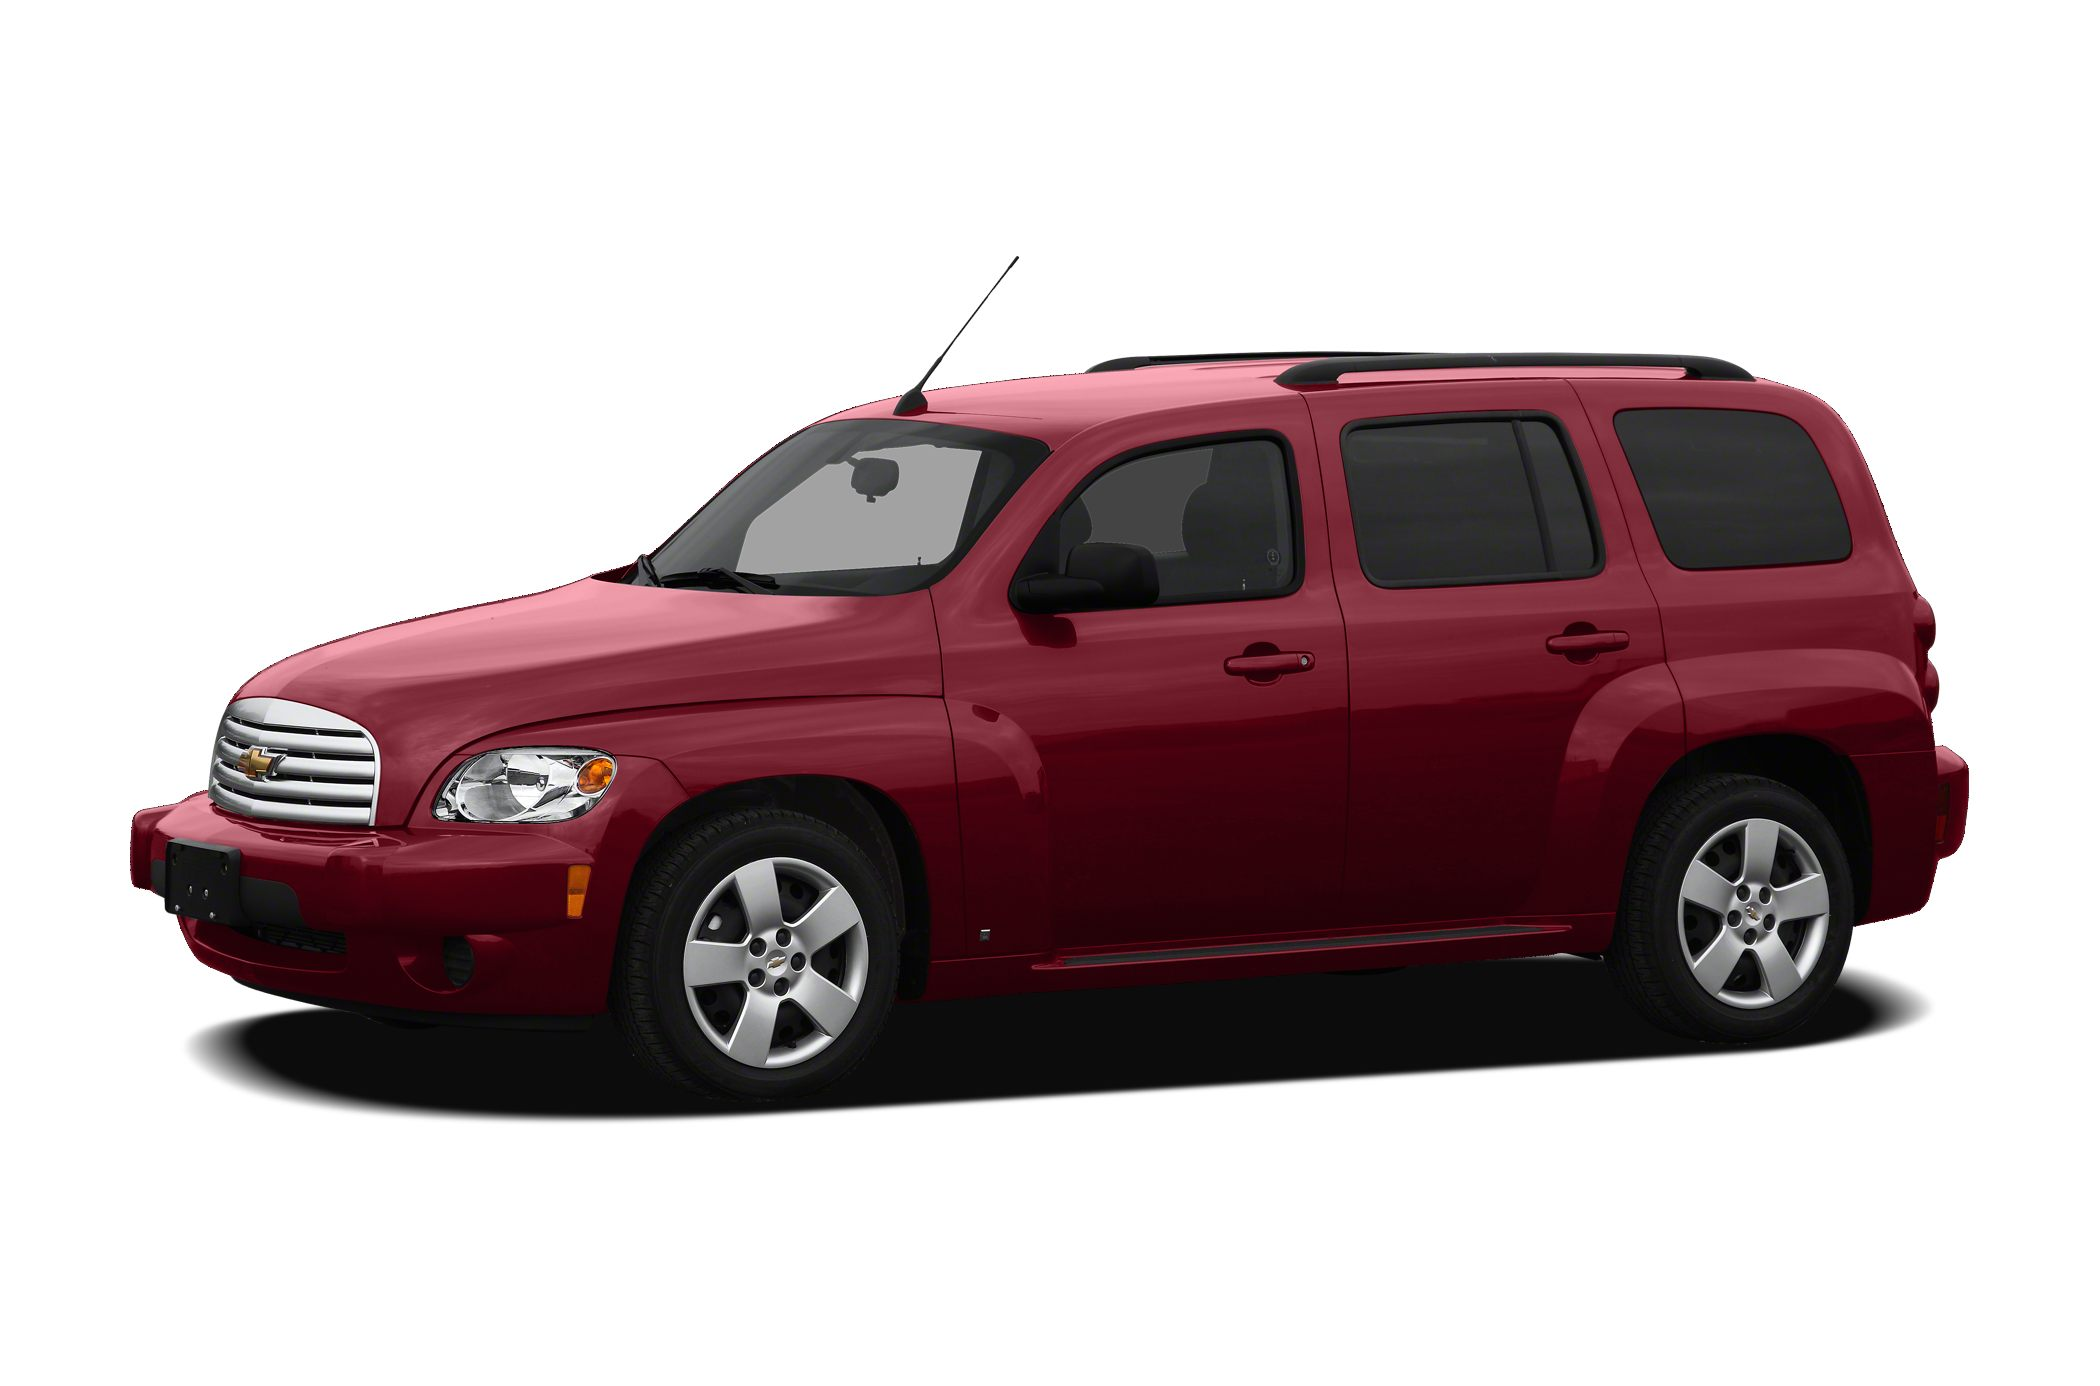 2011 Chevrolet HHR LT Wagon for sale in Houston for $8,900 with 77,020 miles.